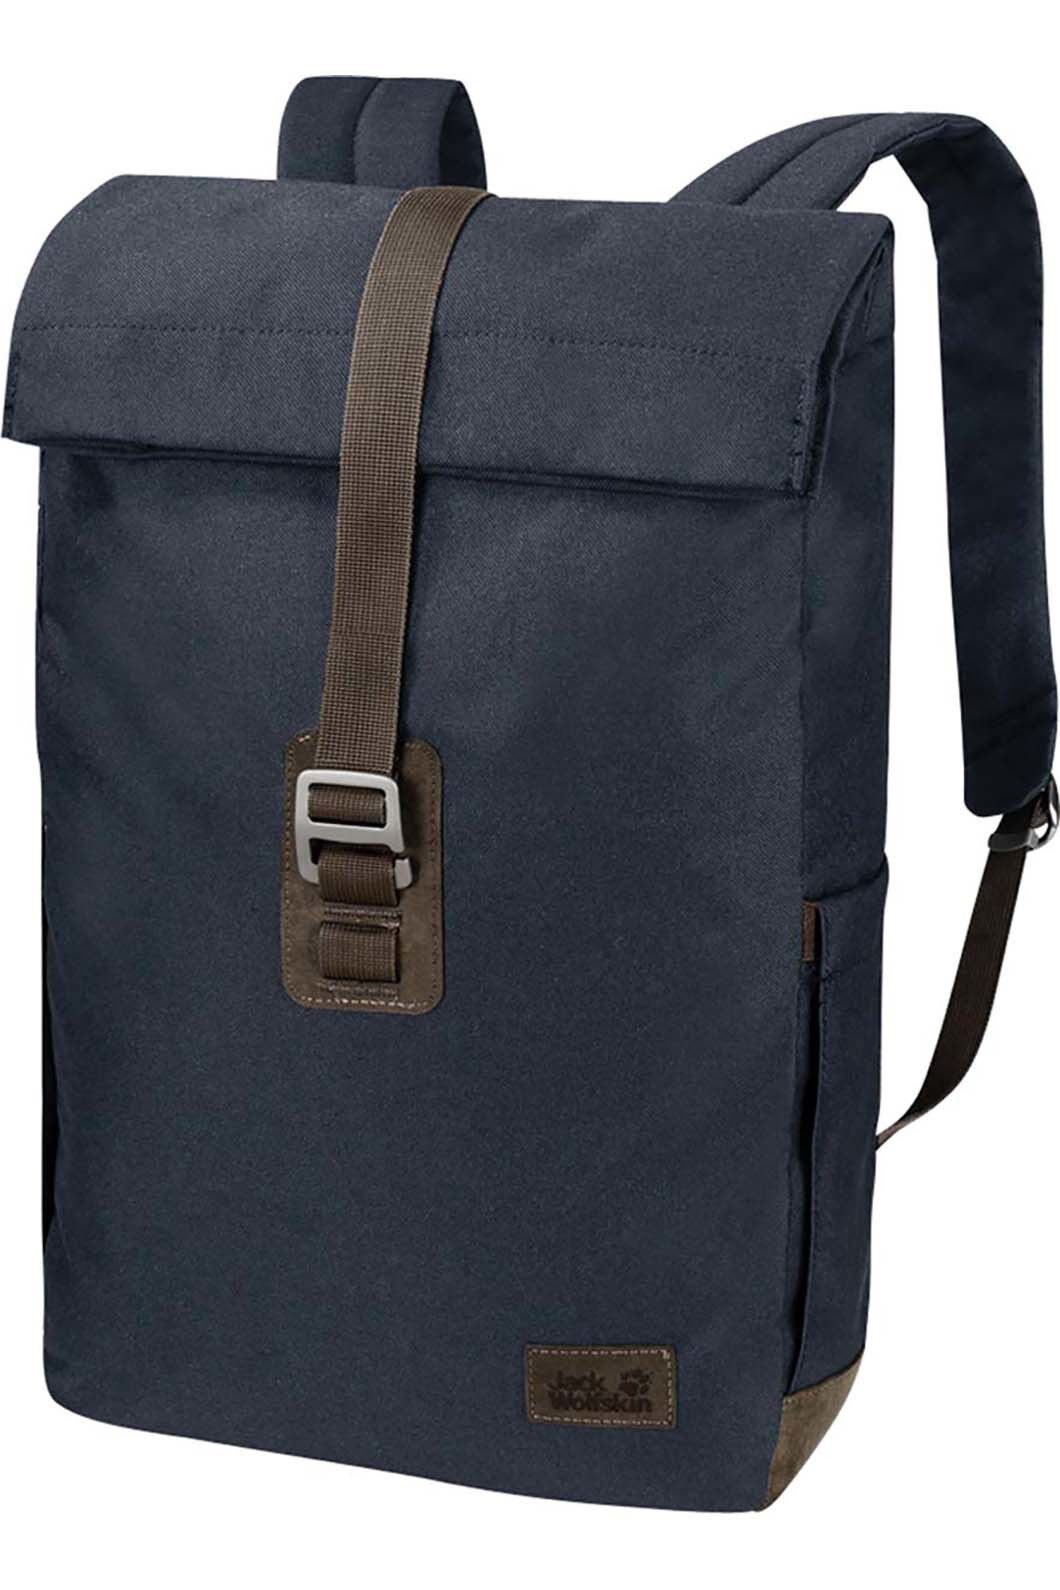 Jack Wolfskin 7 Dials Royal Oak Daypack 18 + 4L, Blue, hi-res